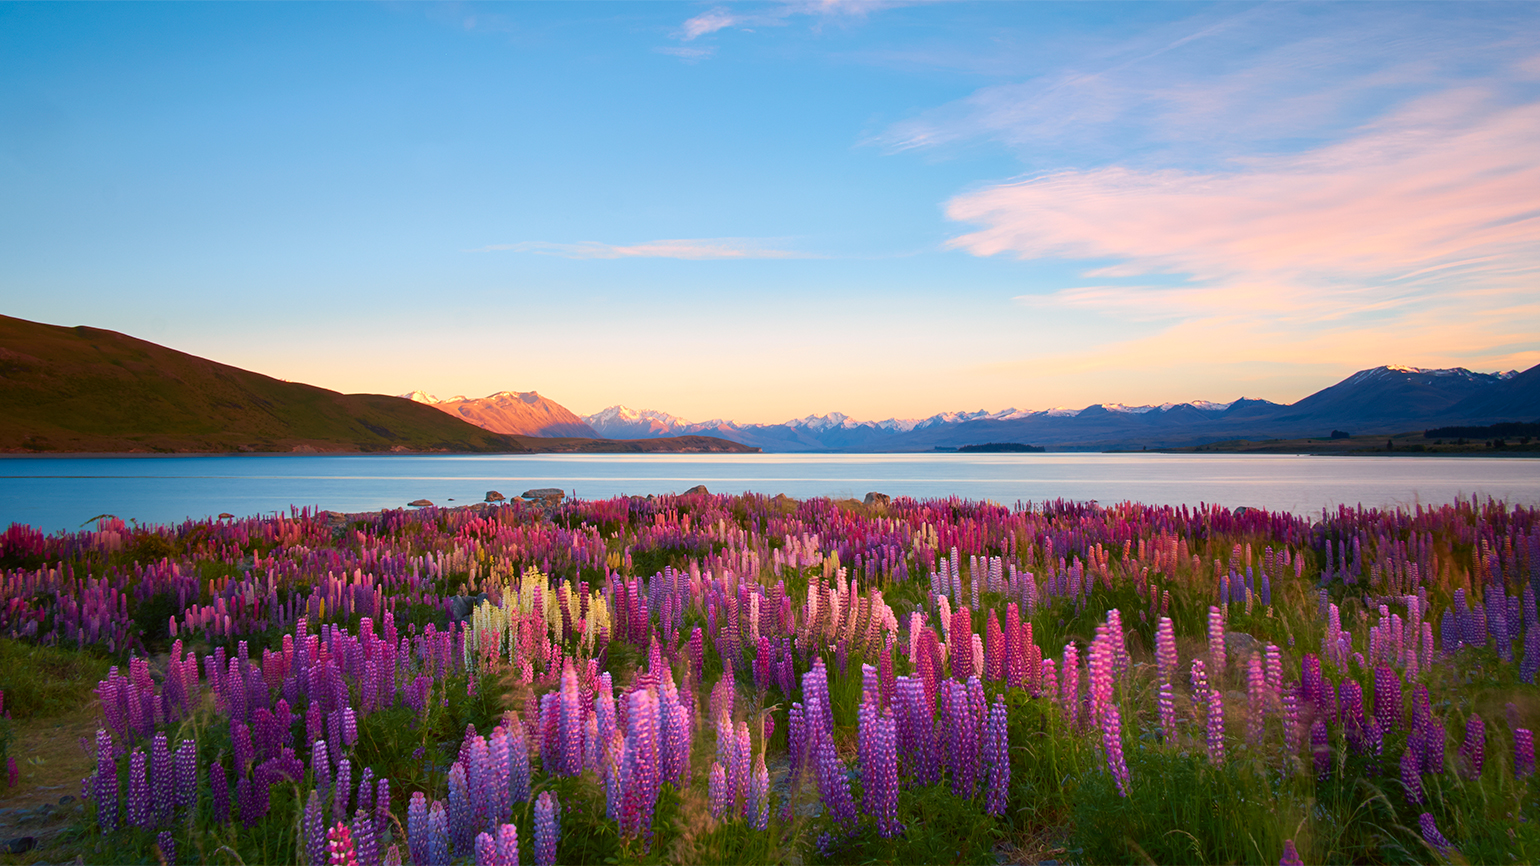 Purple wildflowers by a mountain lake at sunrise